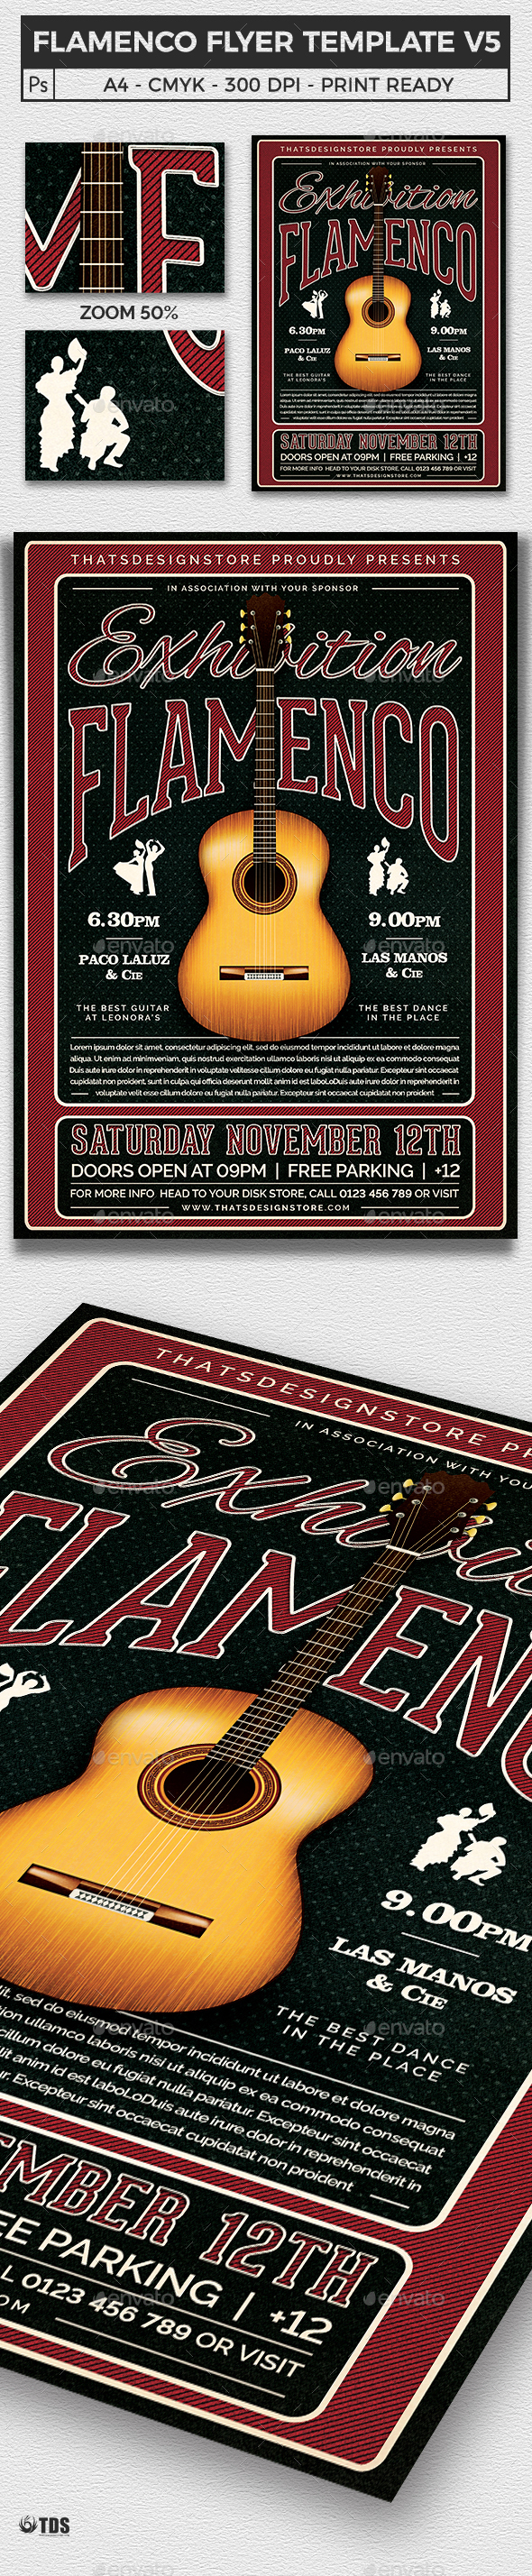 Flamenco Flyer Template V5 - Concerts Events